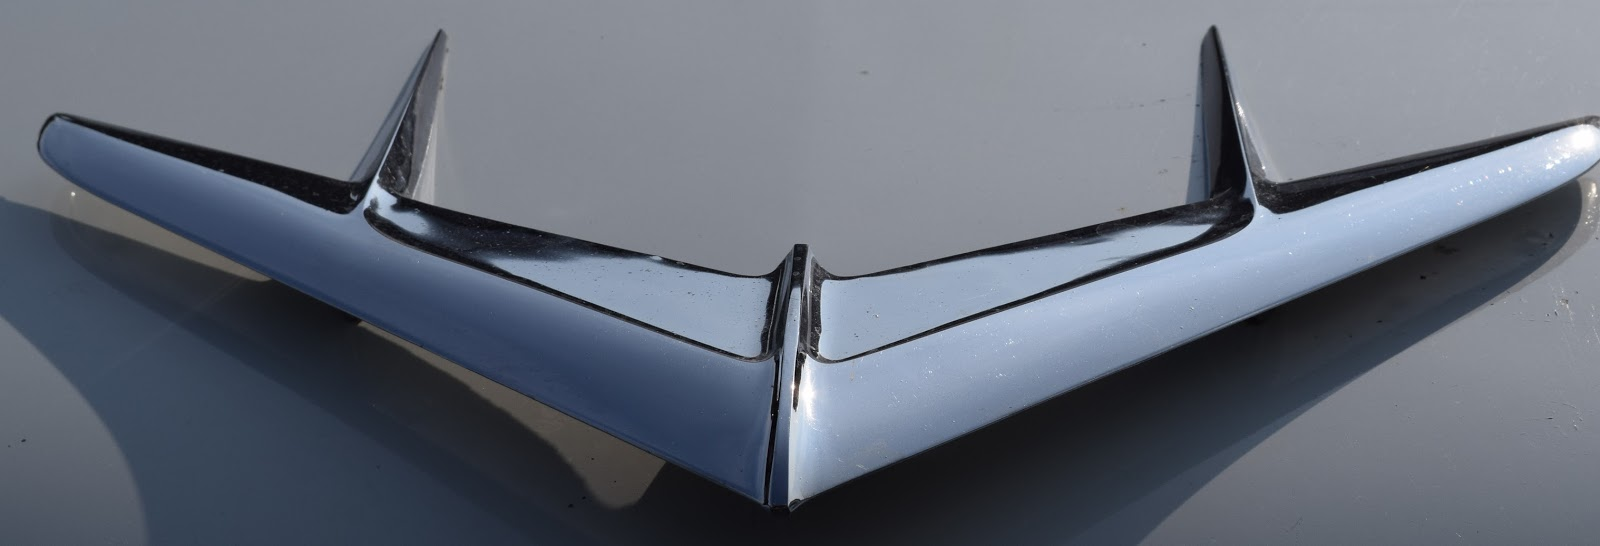 Wing hood ornament - Chief Pontiac Looks Stately On This Hood The Hood Was Up On The Driver S Side Of The Car